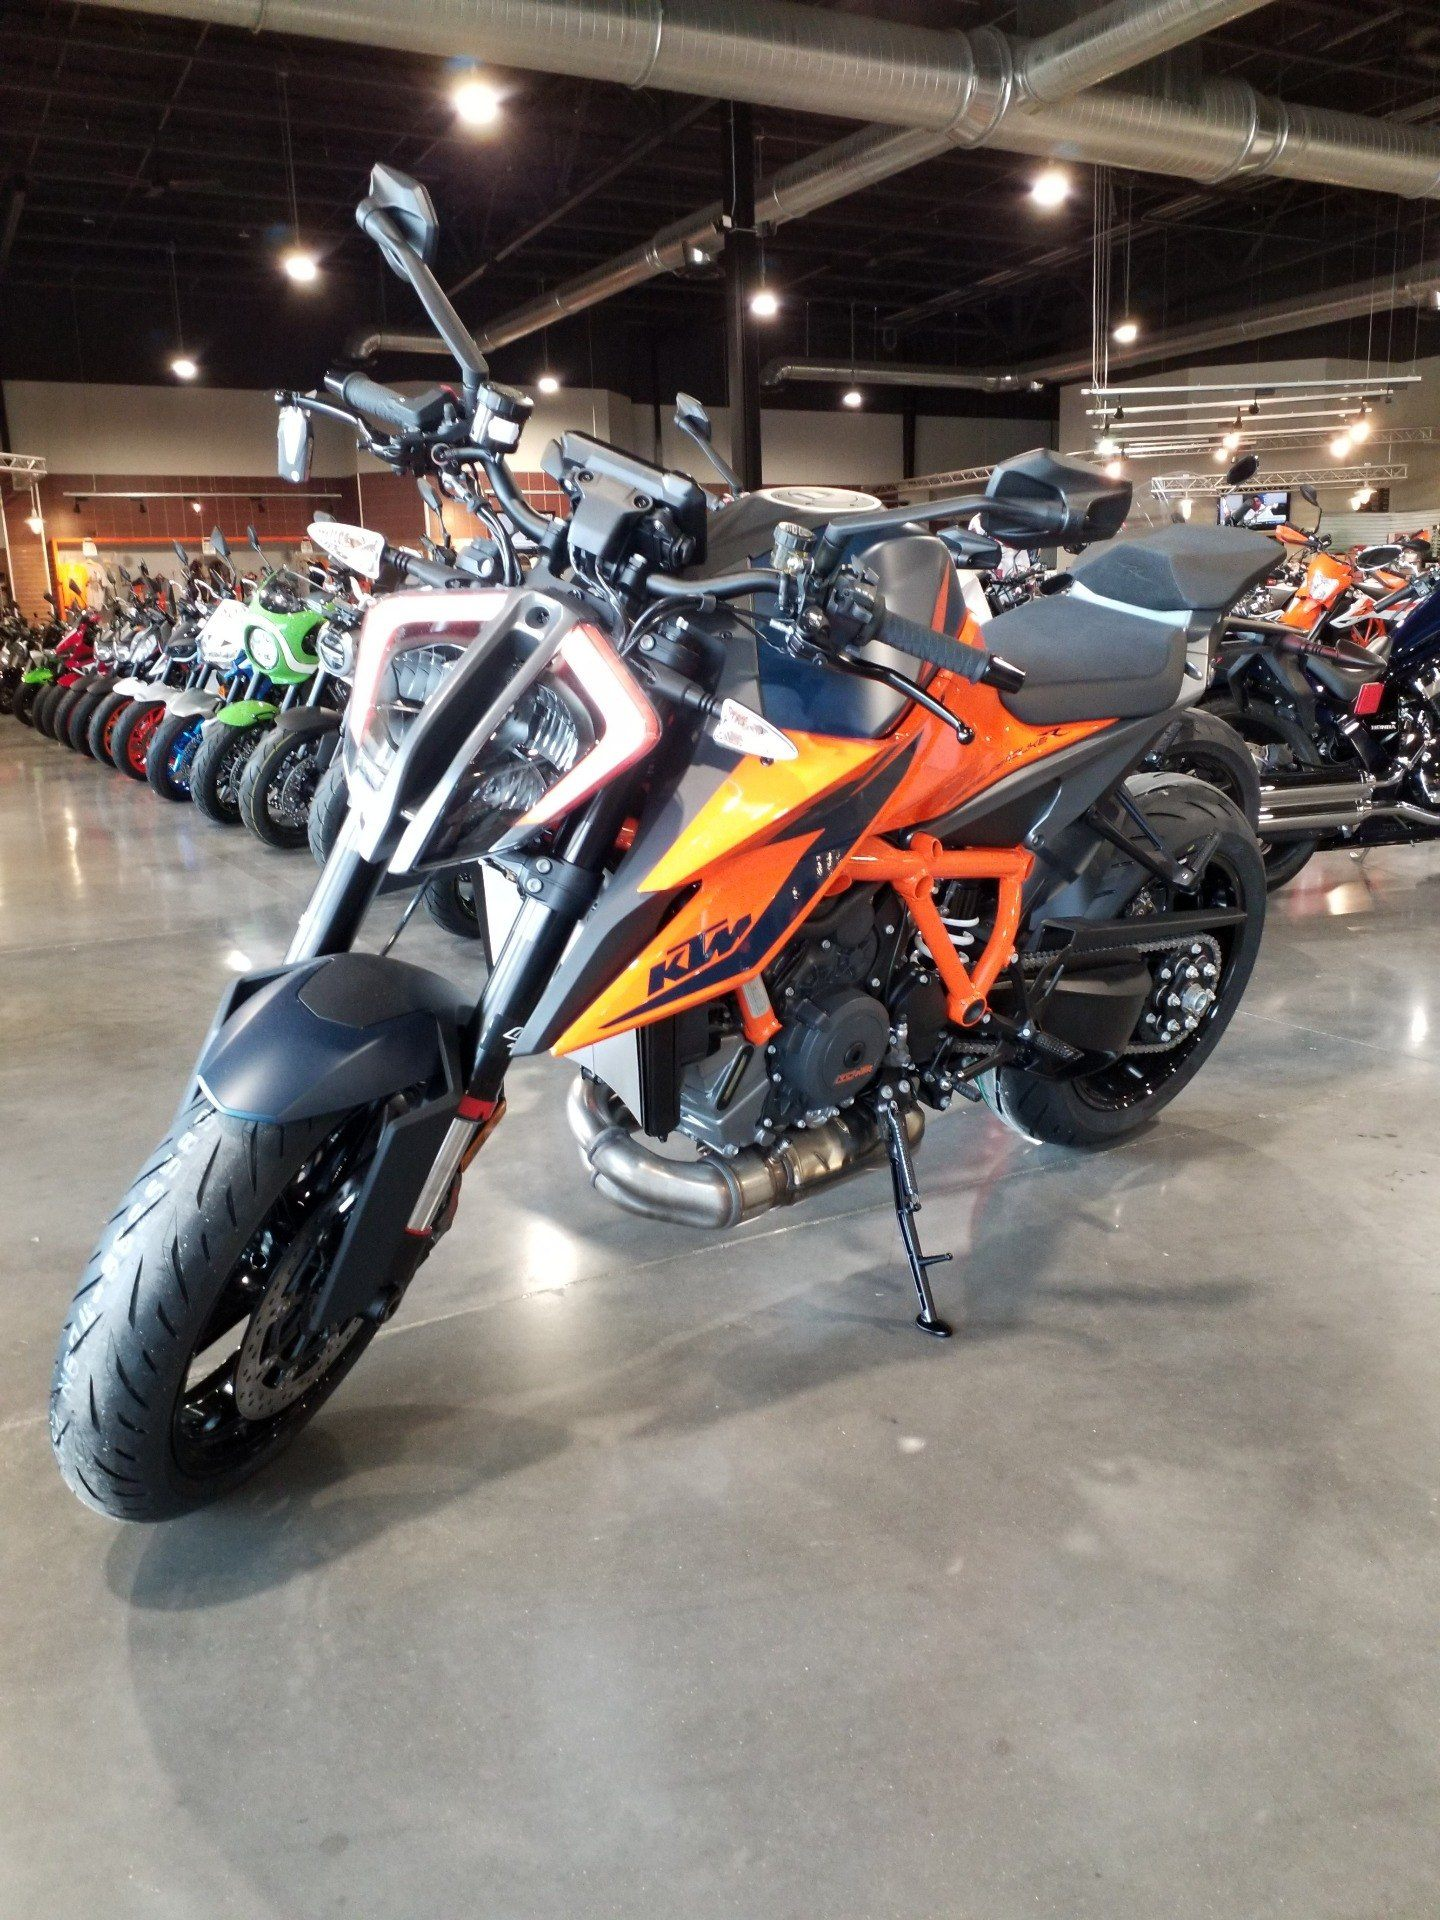 2020 KTM 1290 Super Duke R in Cedar Rapids, Iowa - Photo 1